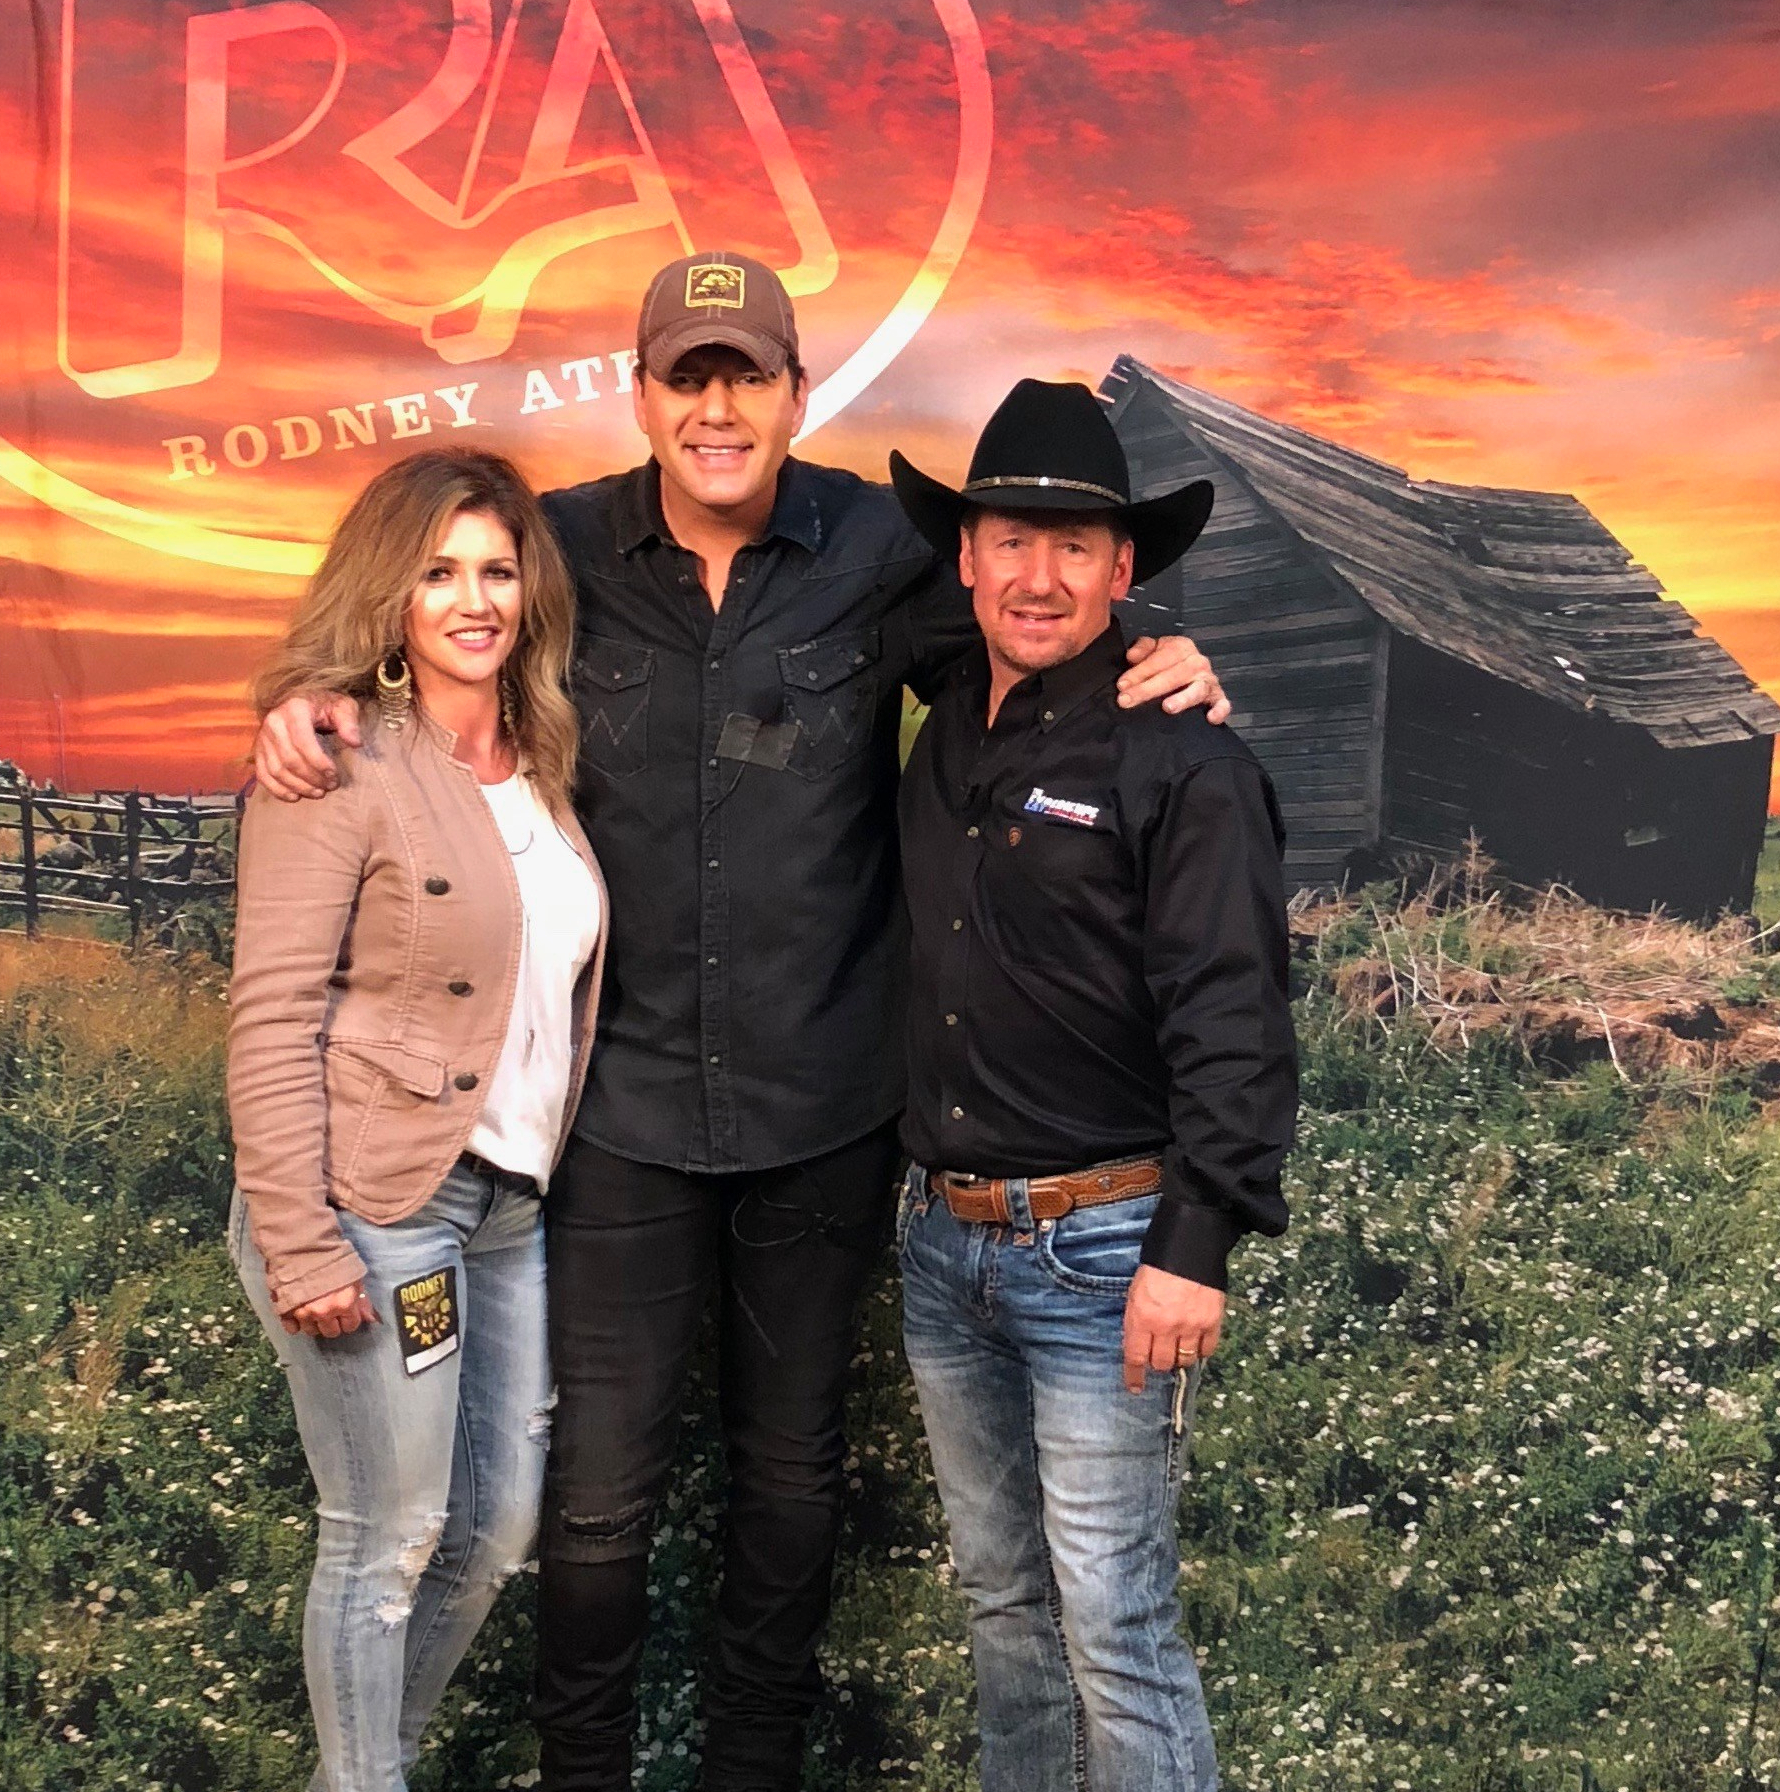 Jodi and Weston Clark with country singer Rodney Atkins on their TV show The Experience.